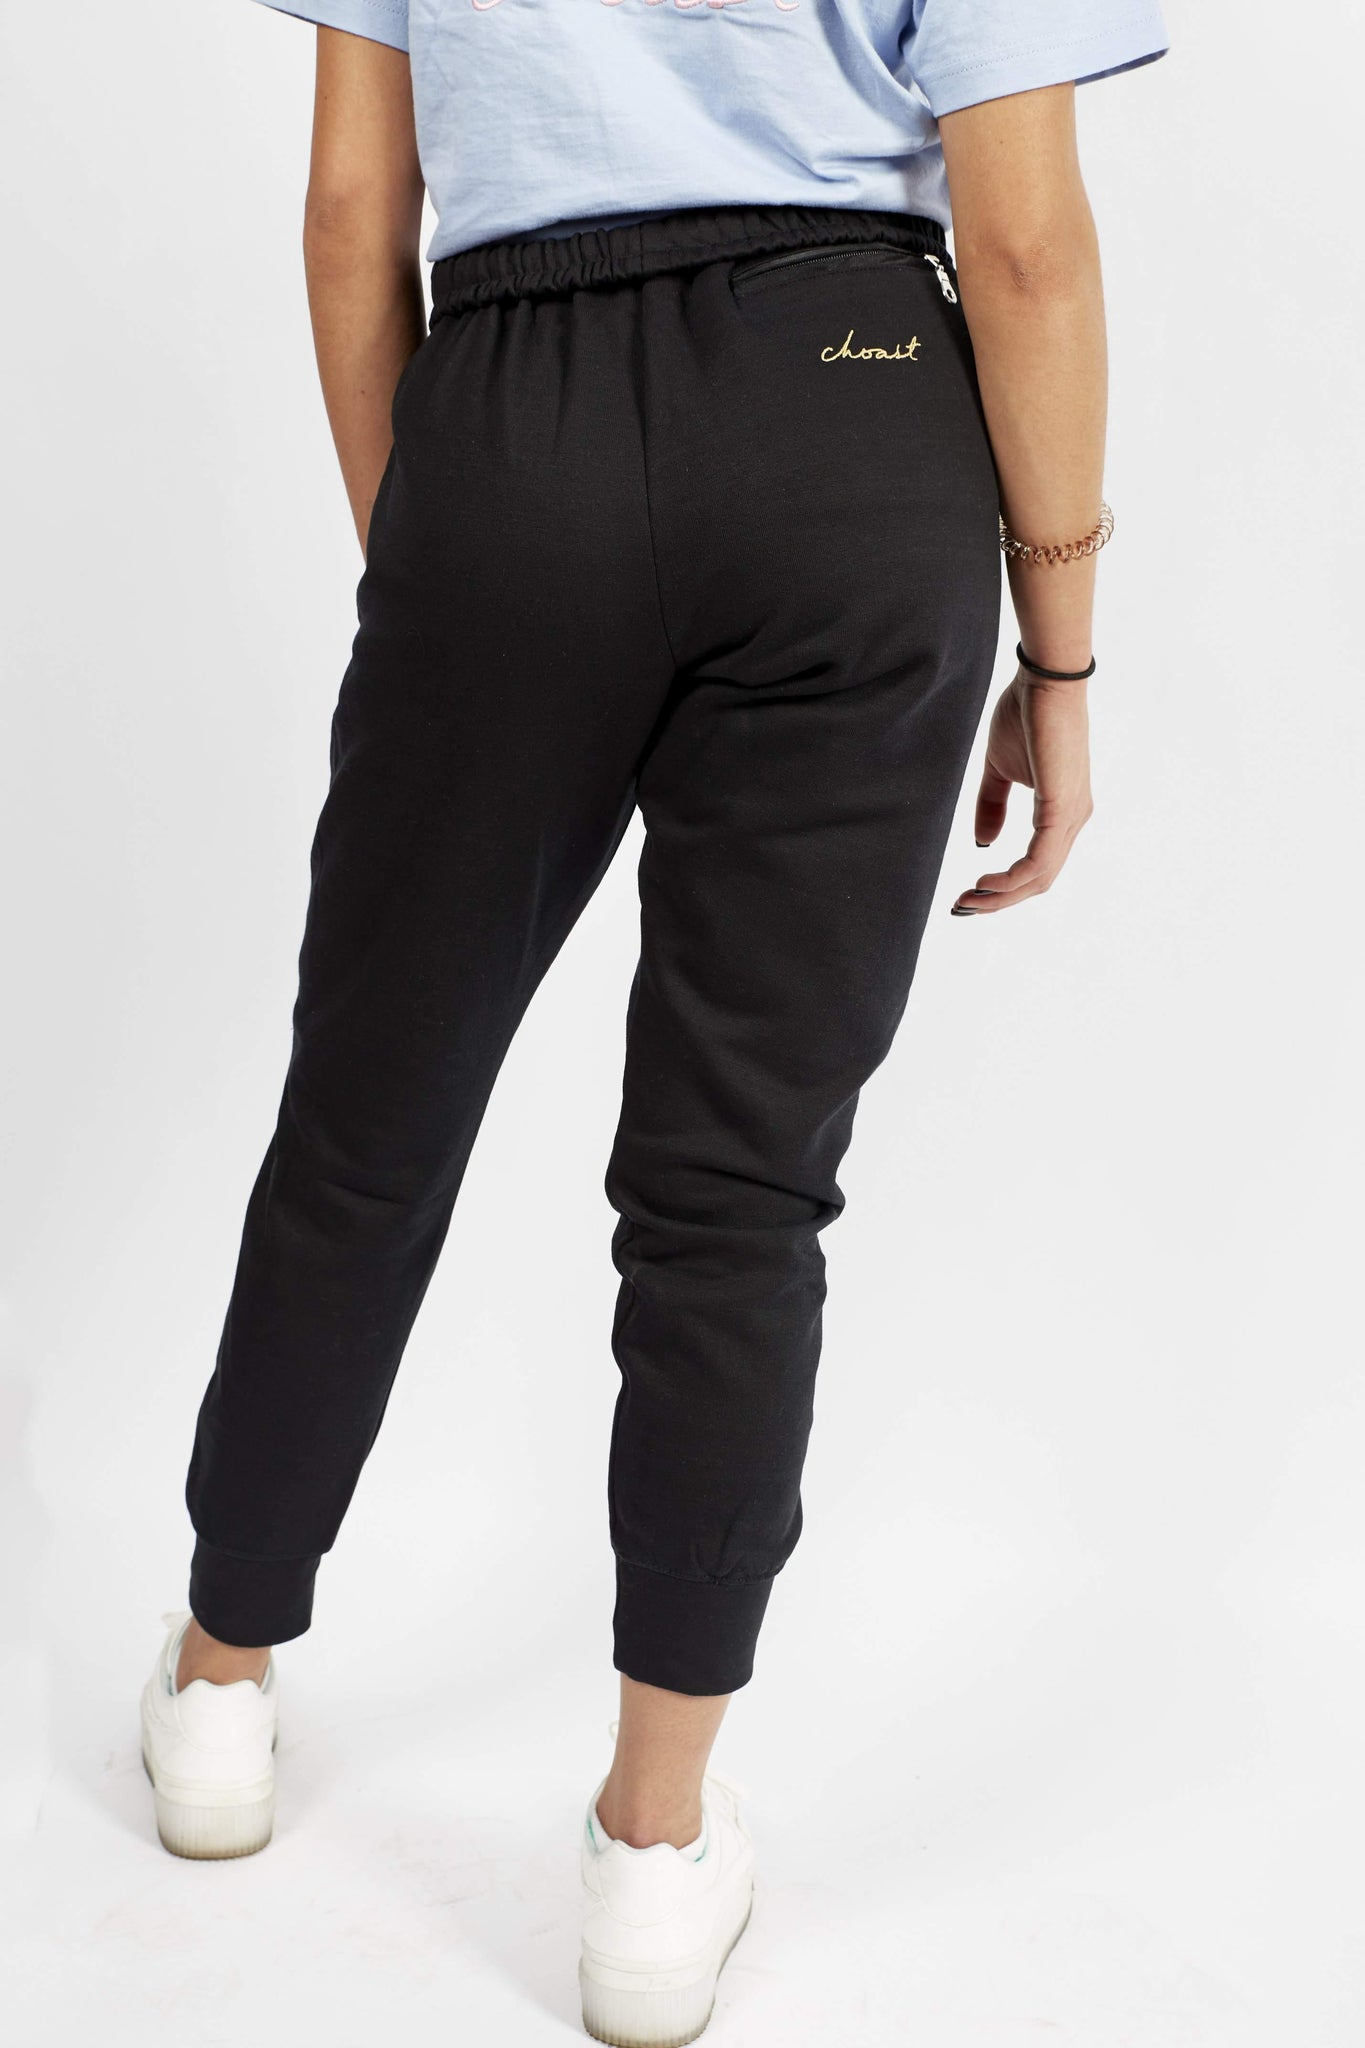 BLACK CHOAST SWEATPANTS